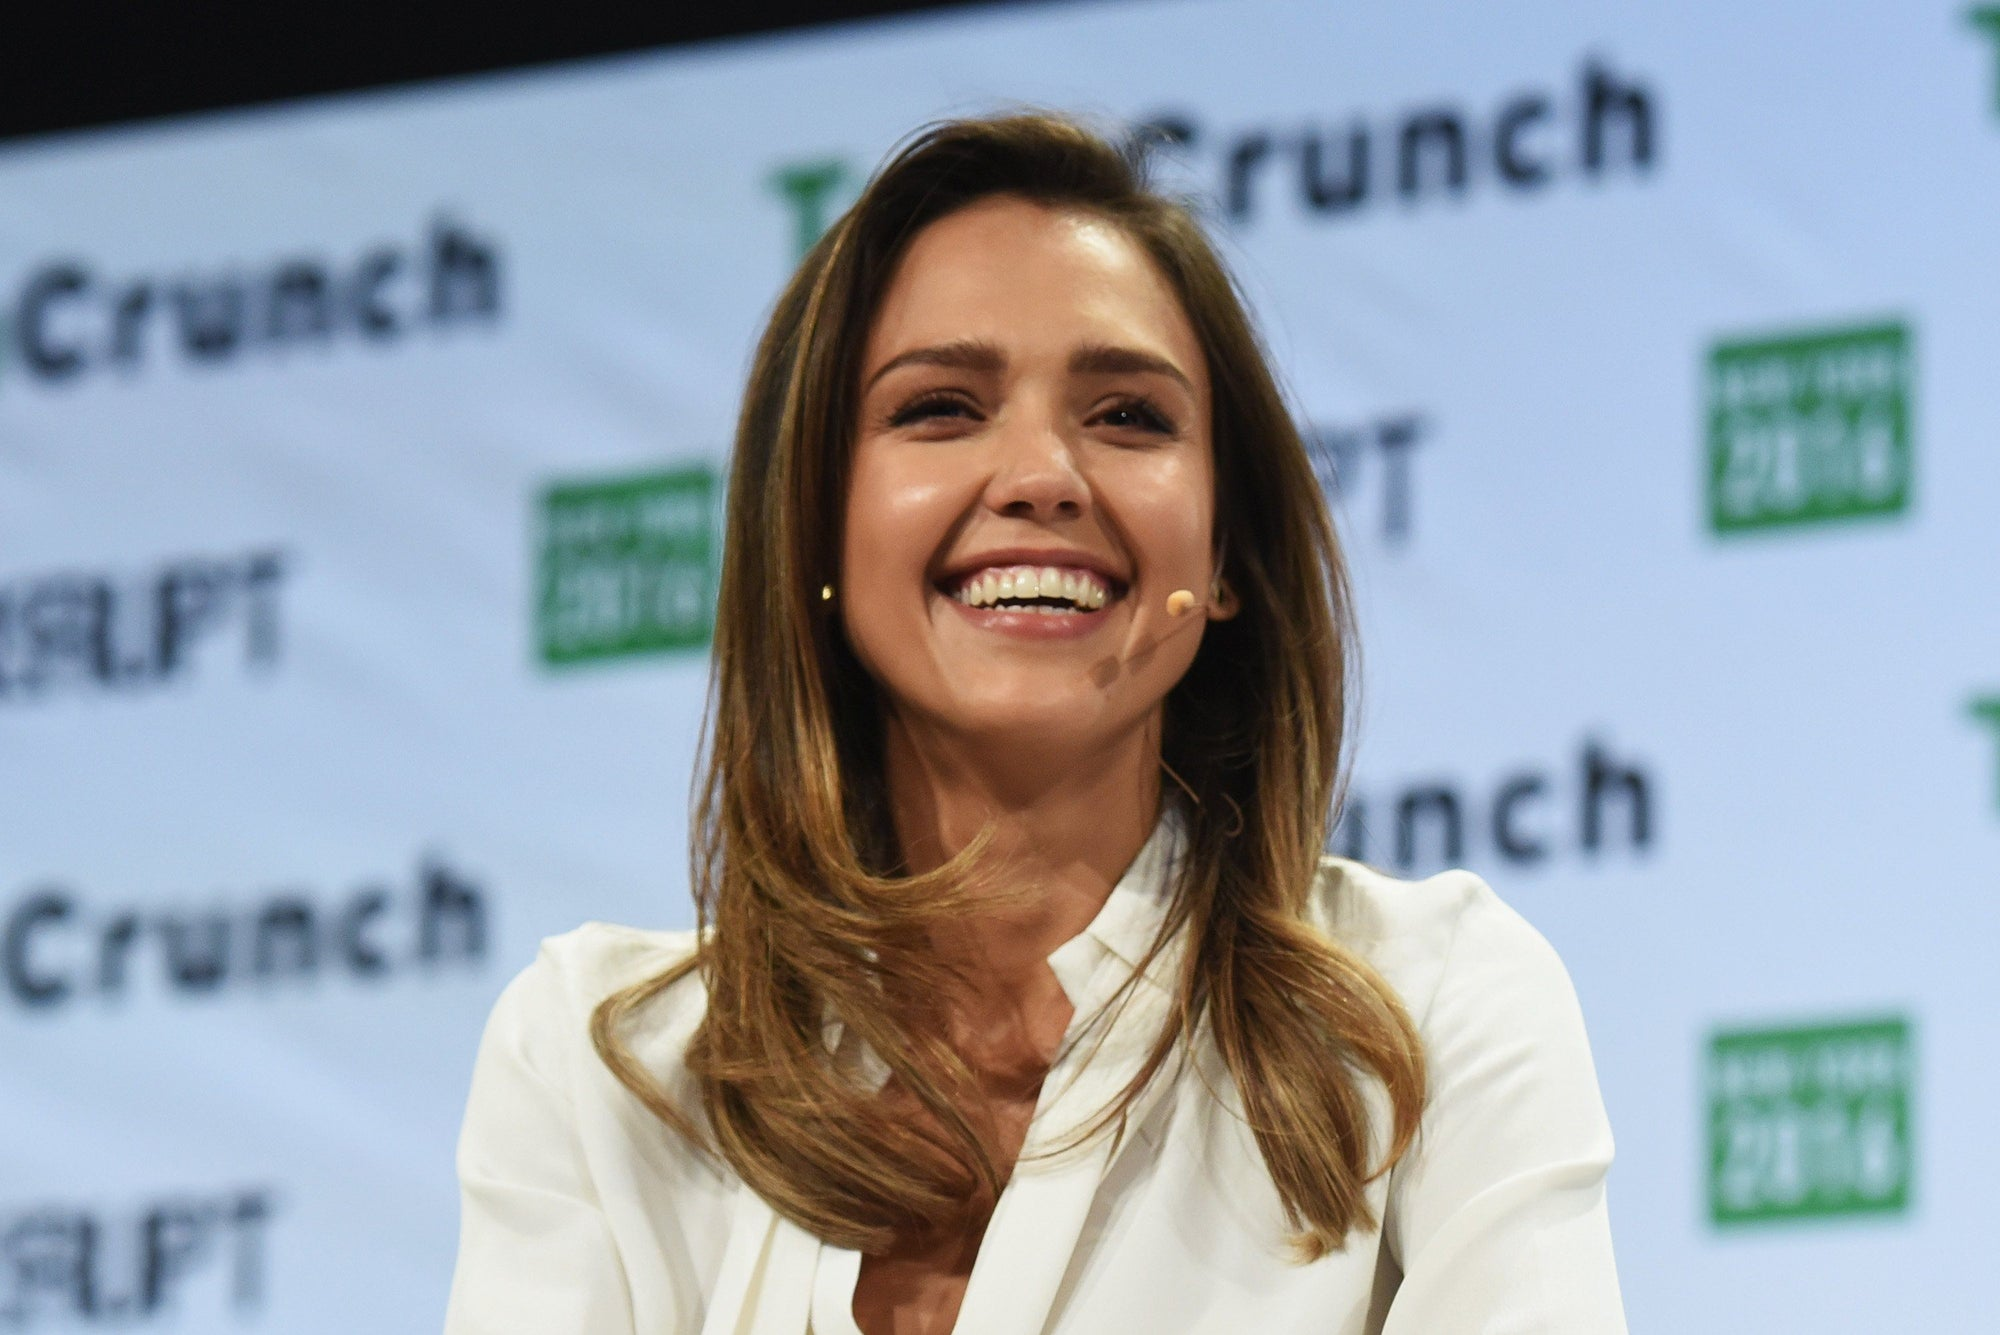 10 Gifts We'd Give Jessica Alba for the Birth of Her New Son